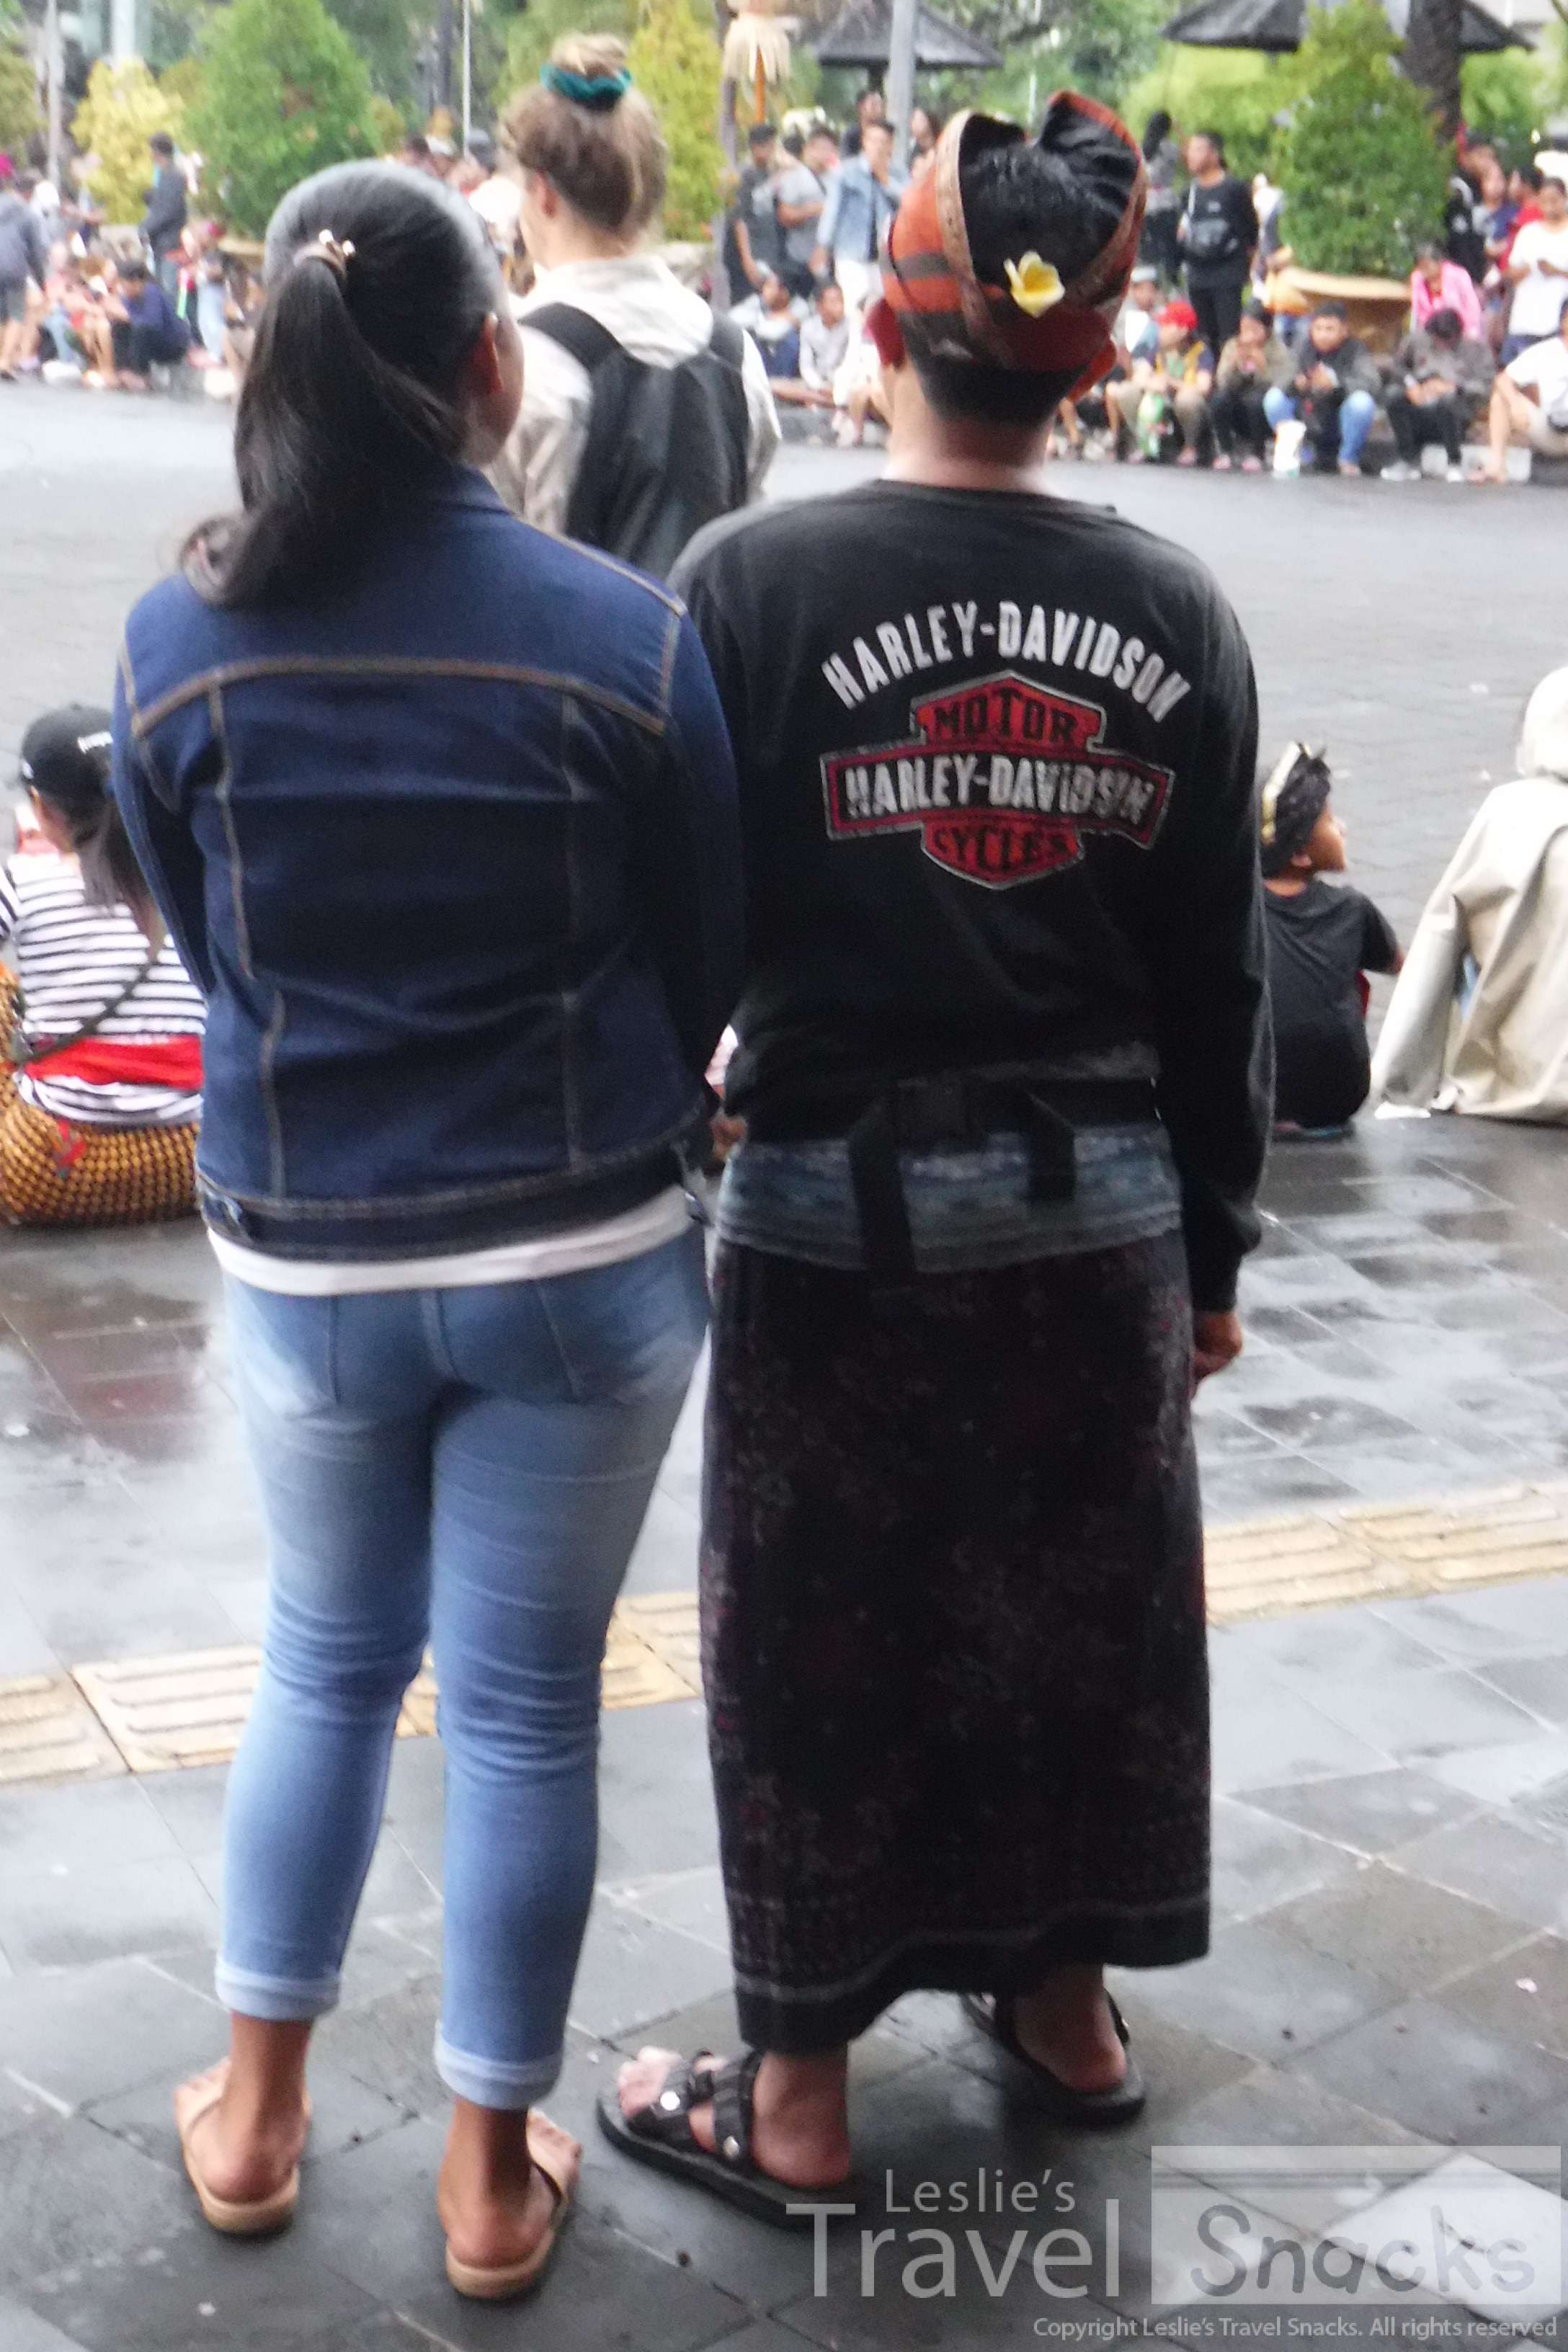 I love men in sarongs. I especially love this one with a Harley shirt! LOL